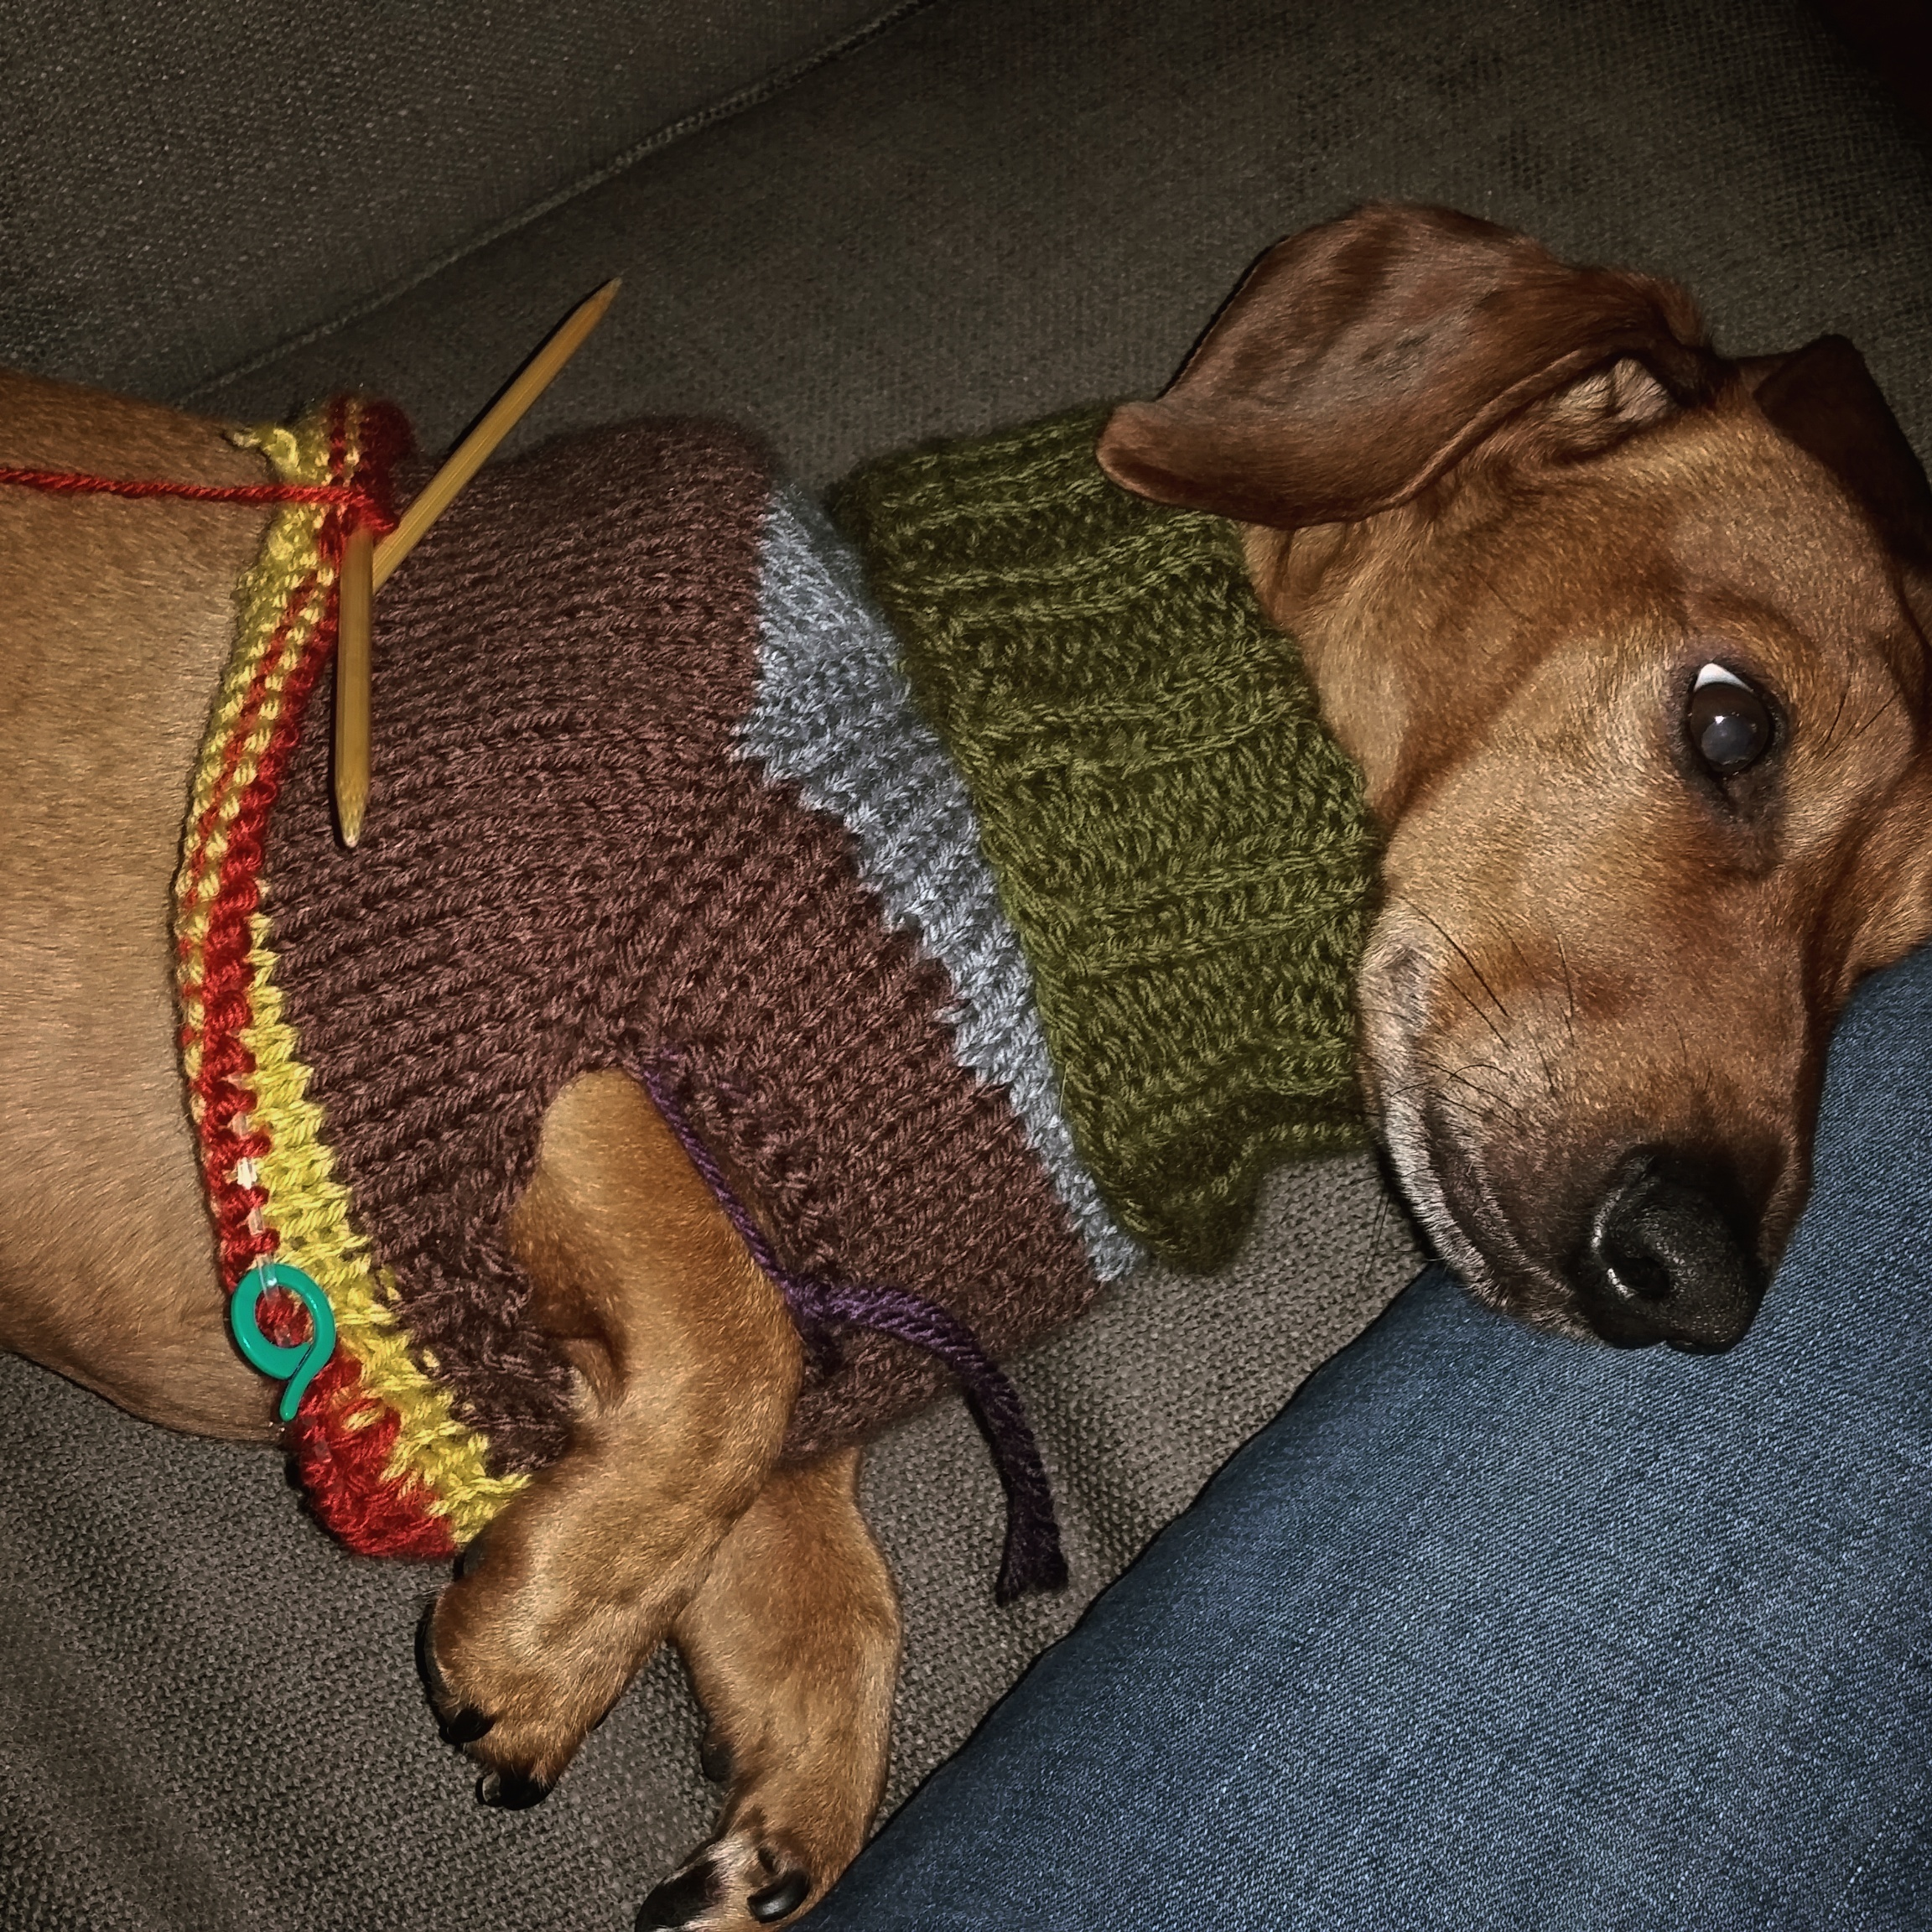 My Dachshund in a half knit sweater